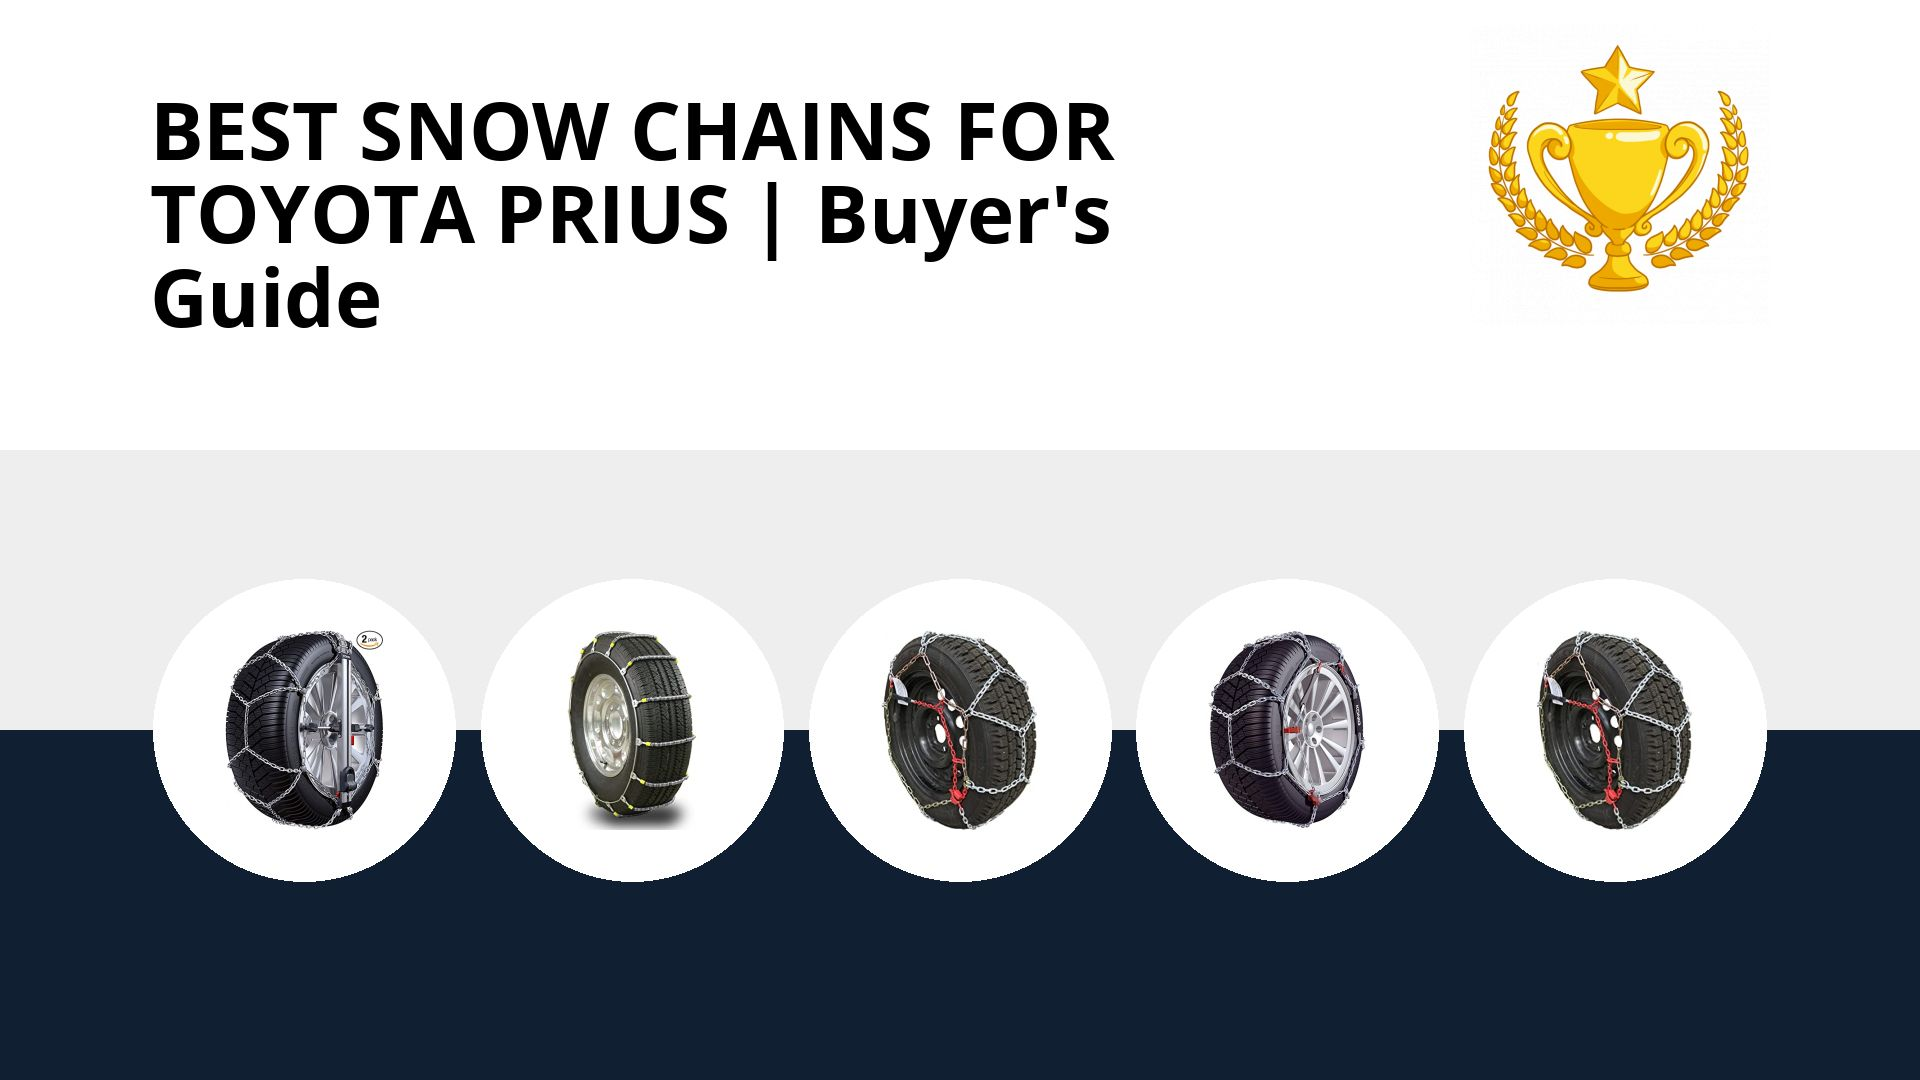 Best Snow Chains For Toyota Prius: image